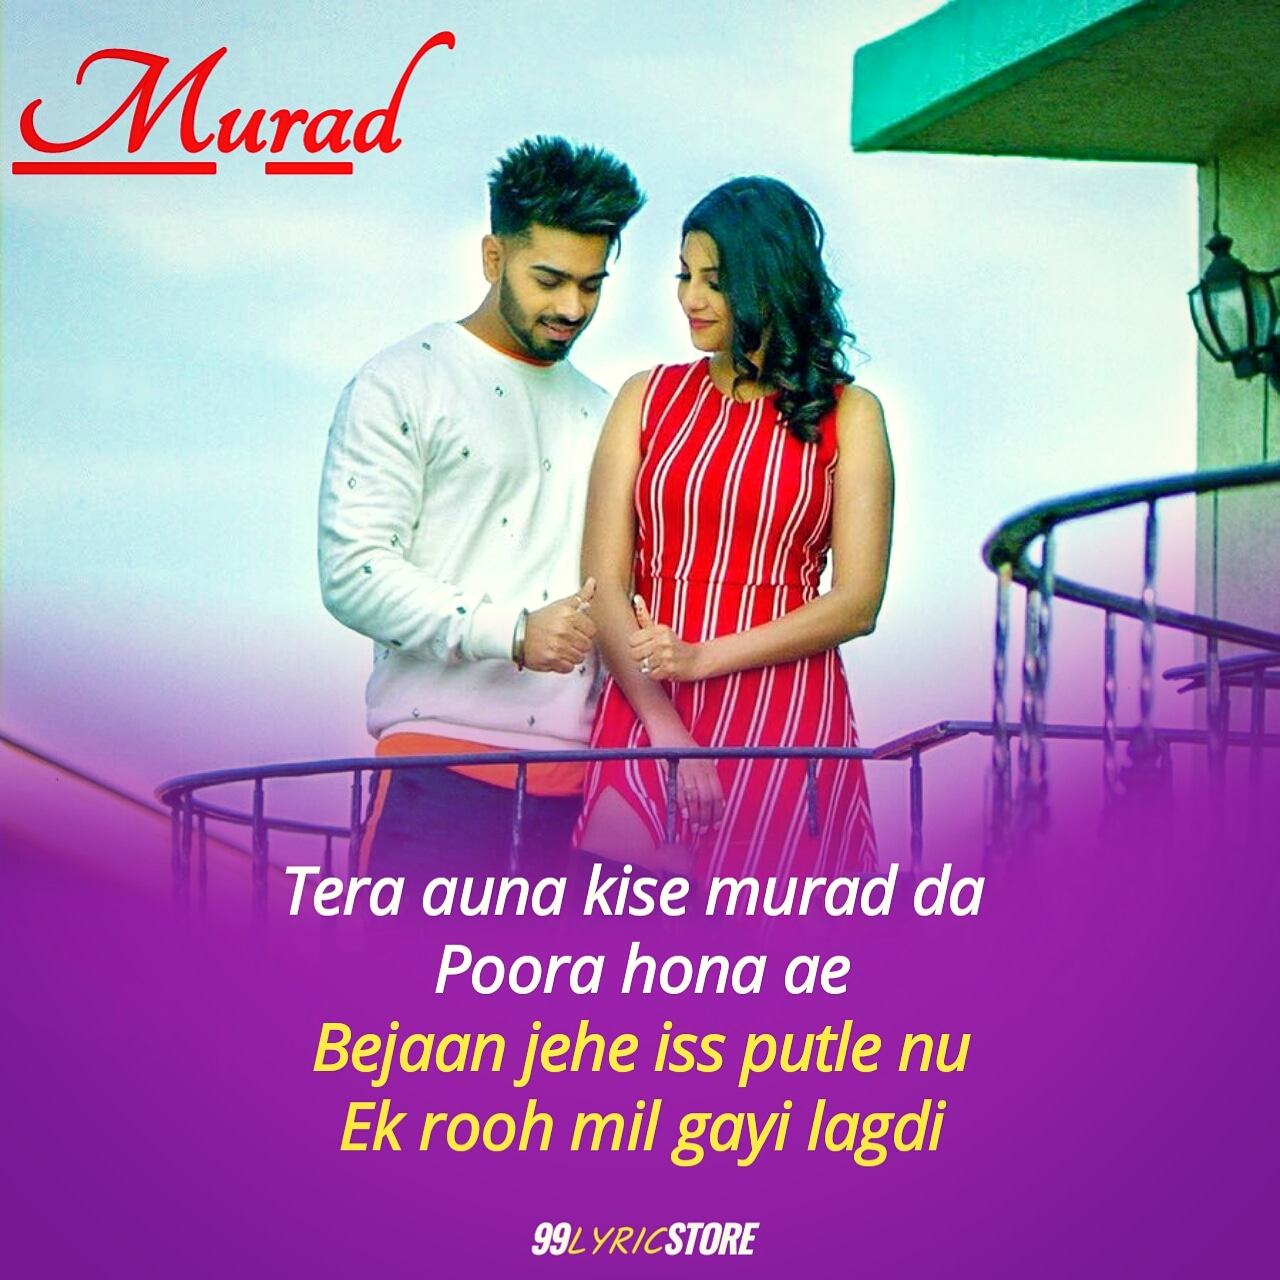 Murad Punjabi Song Lyrics sung by Karan Sehmbi